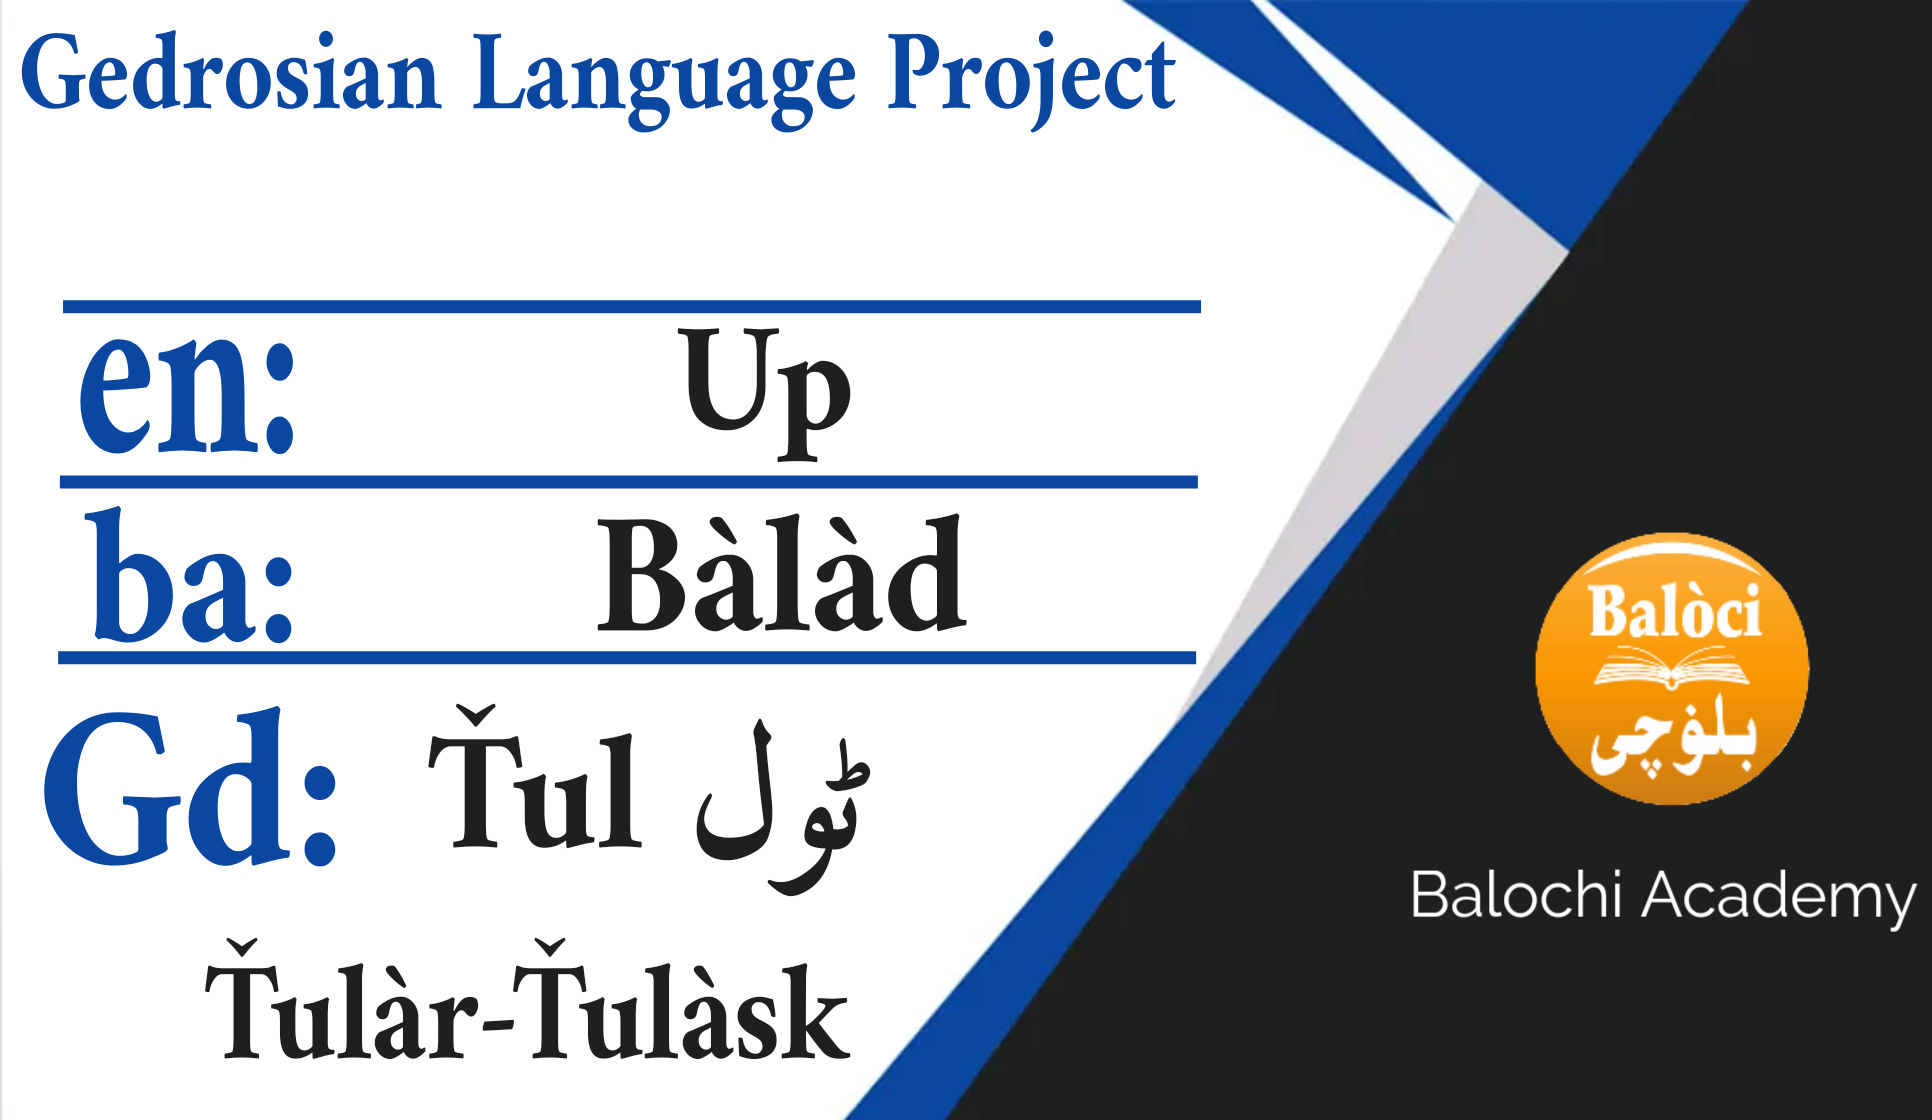 Up in Gedrosian Language(Old Balochi)